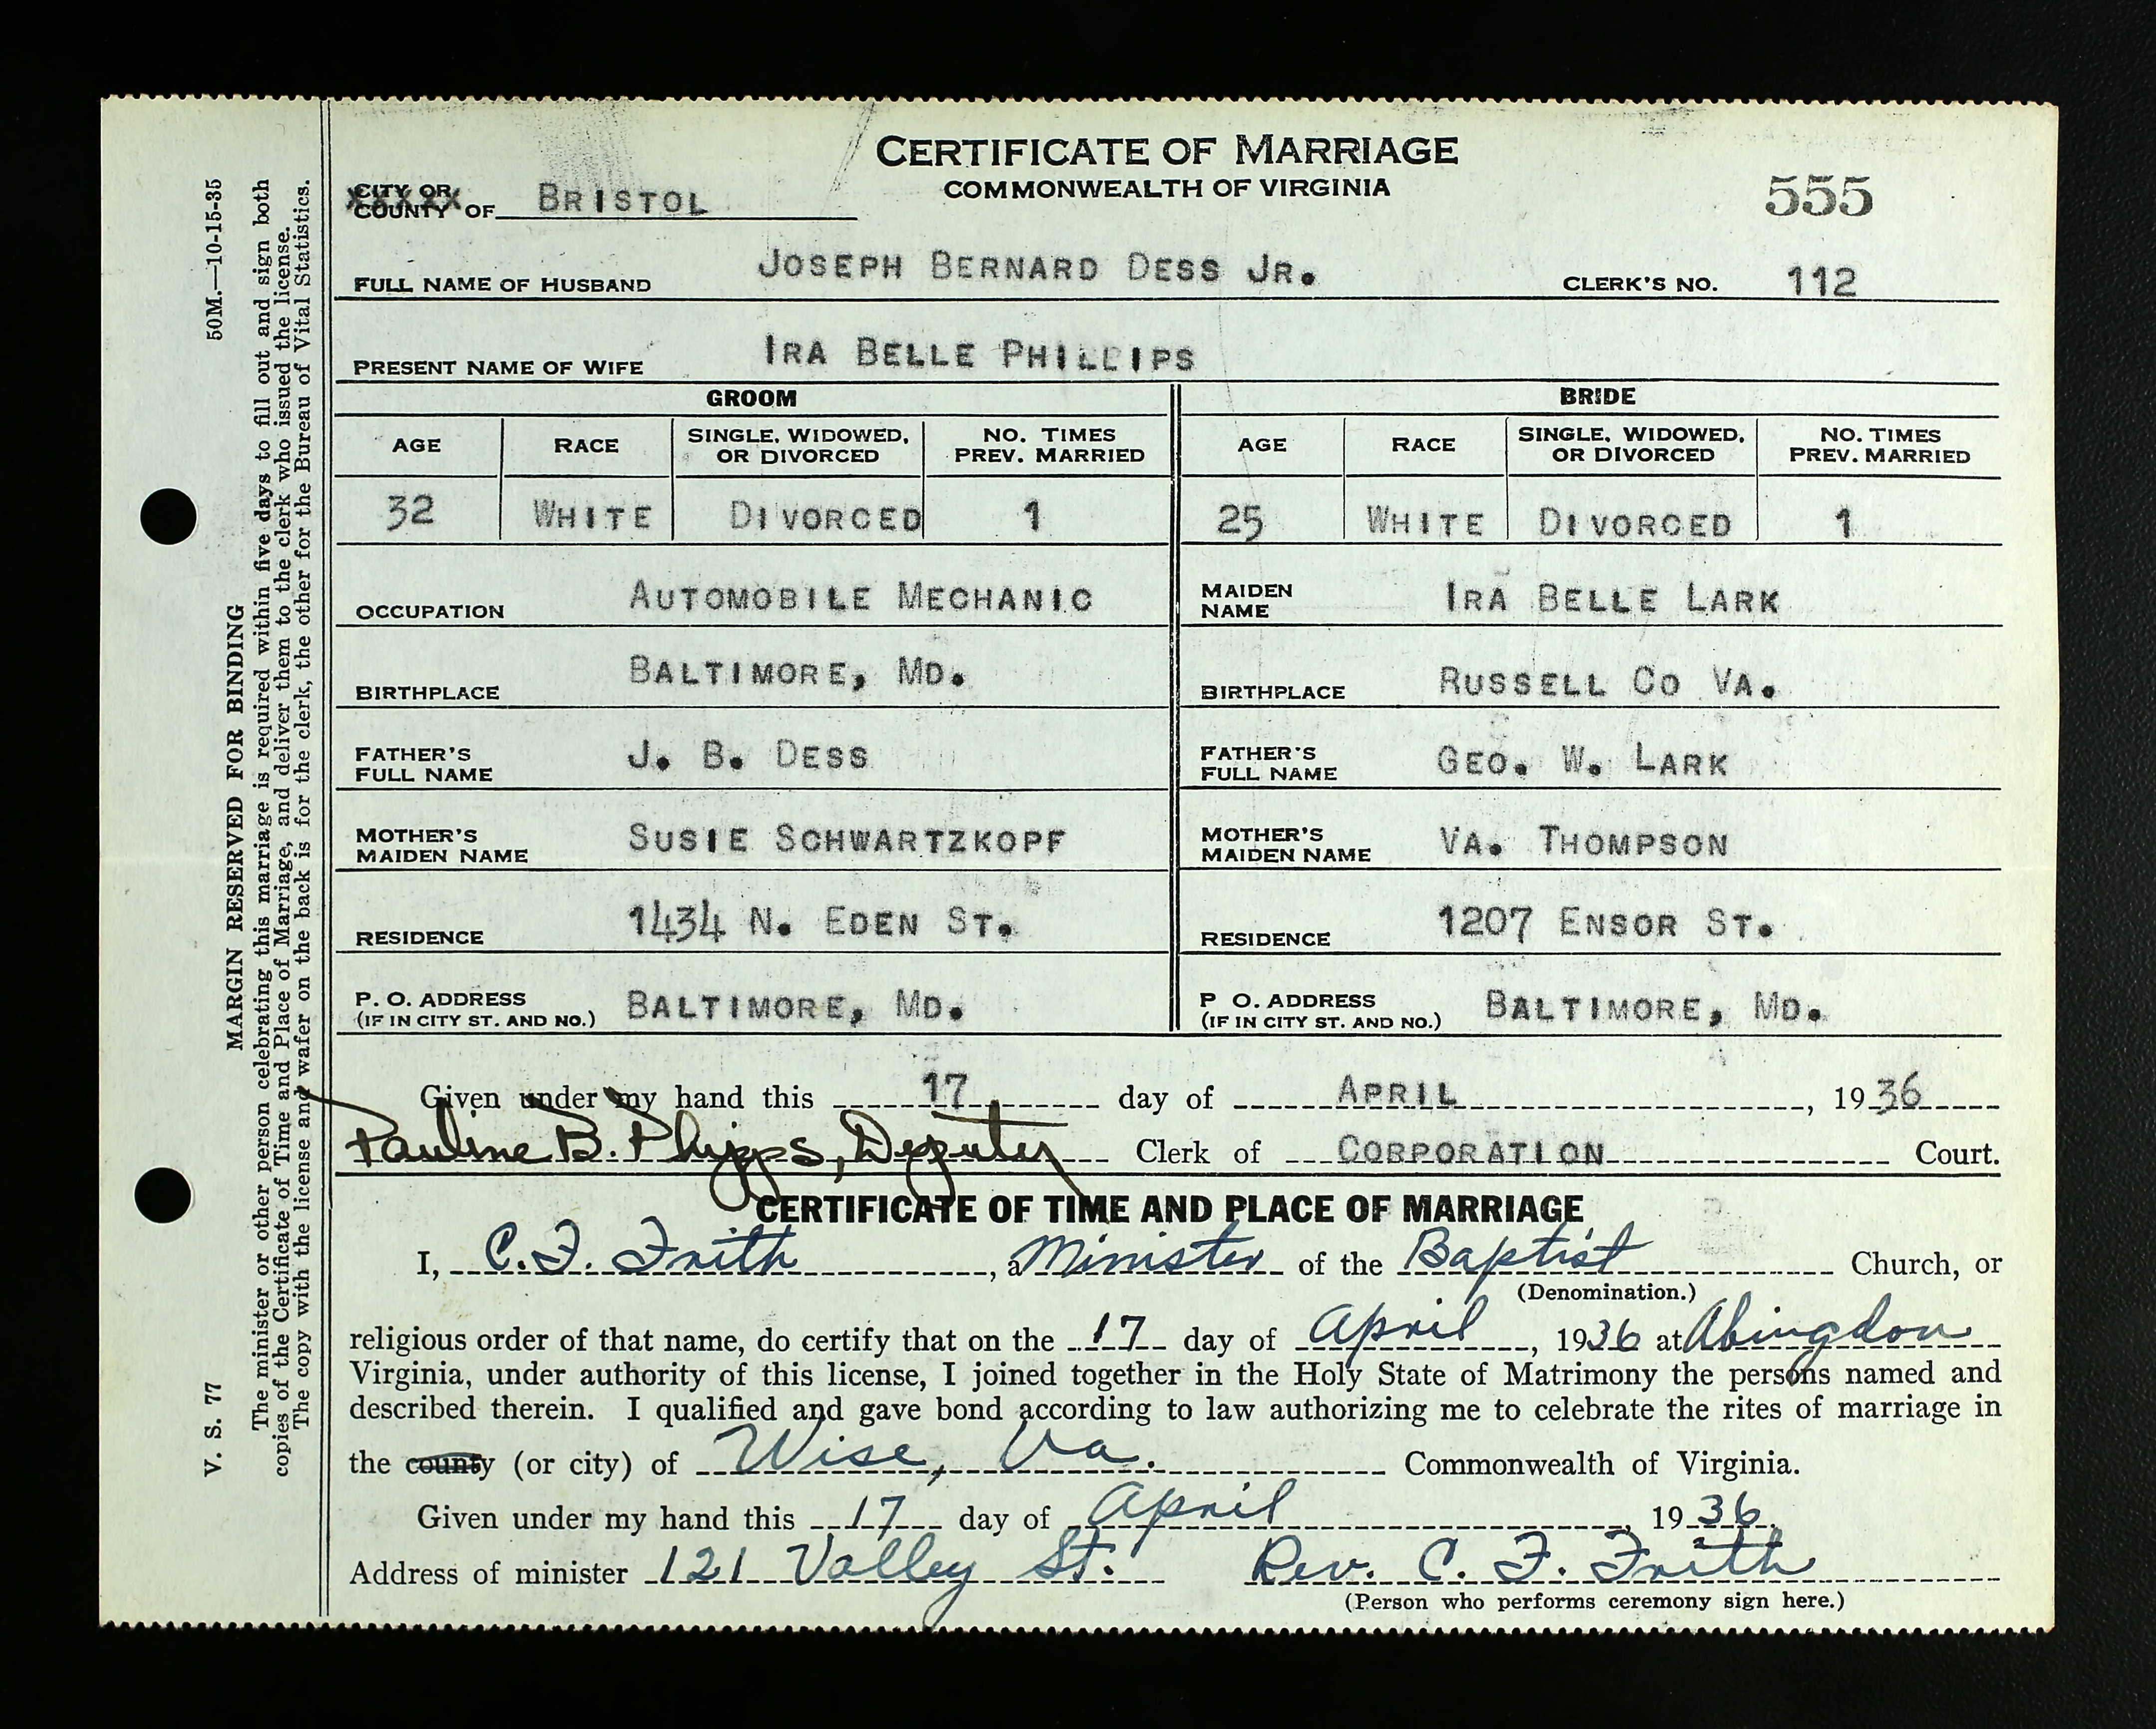 Lovely pictures of birth certificate md business cards and resume vital records from birth certificate md image source larkfamilygenealogy aiddatafo Image collections